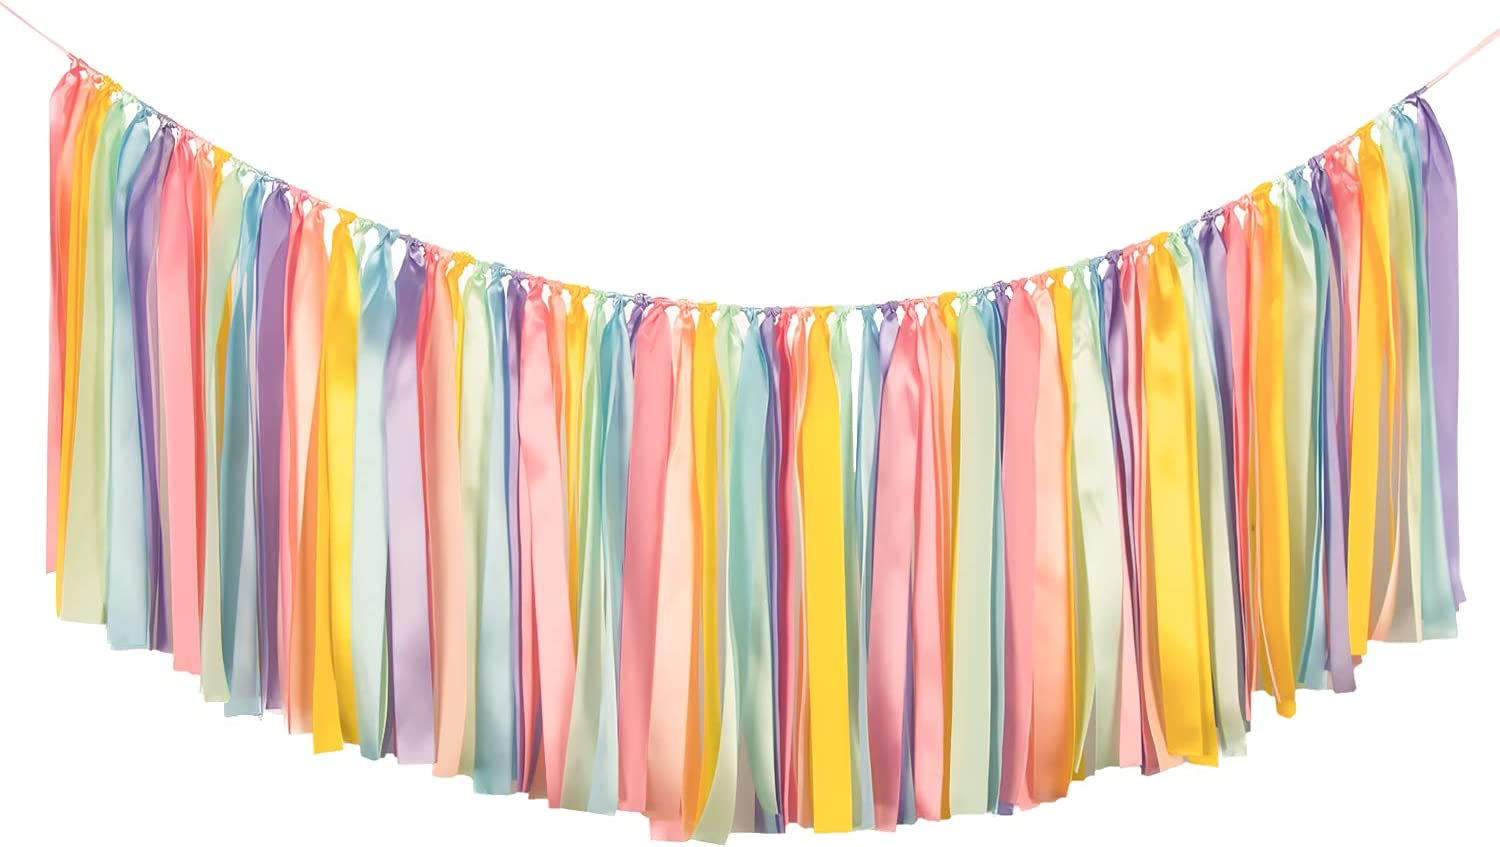 Rainbow Ribbon Tassel Outlet SALE Garland Colorful Banner Dec Fabric Hanging Luxury